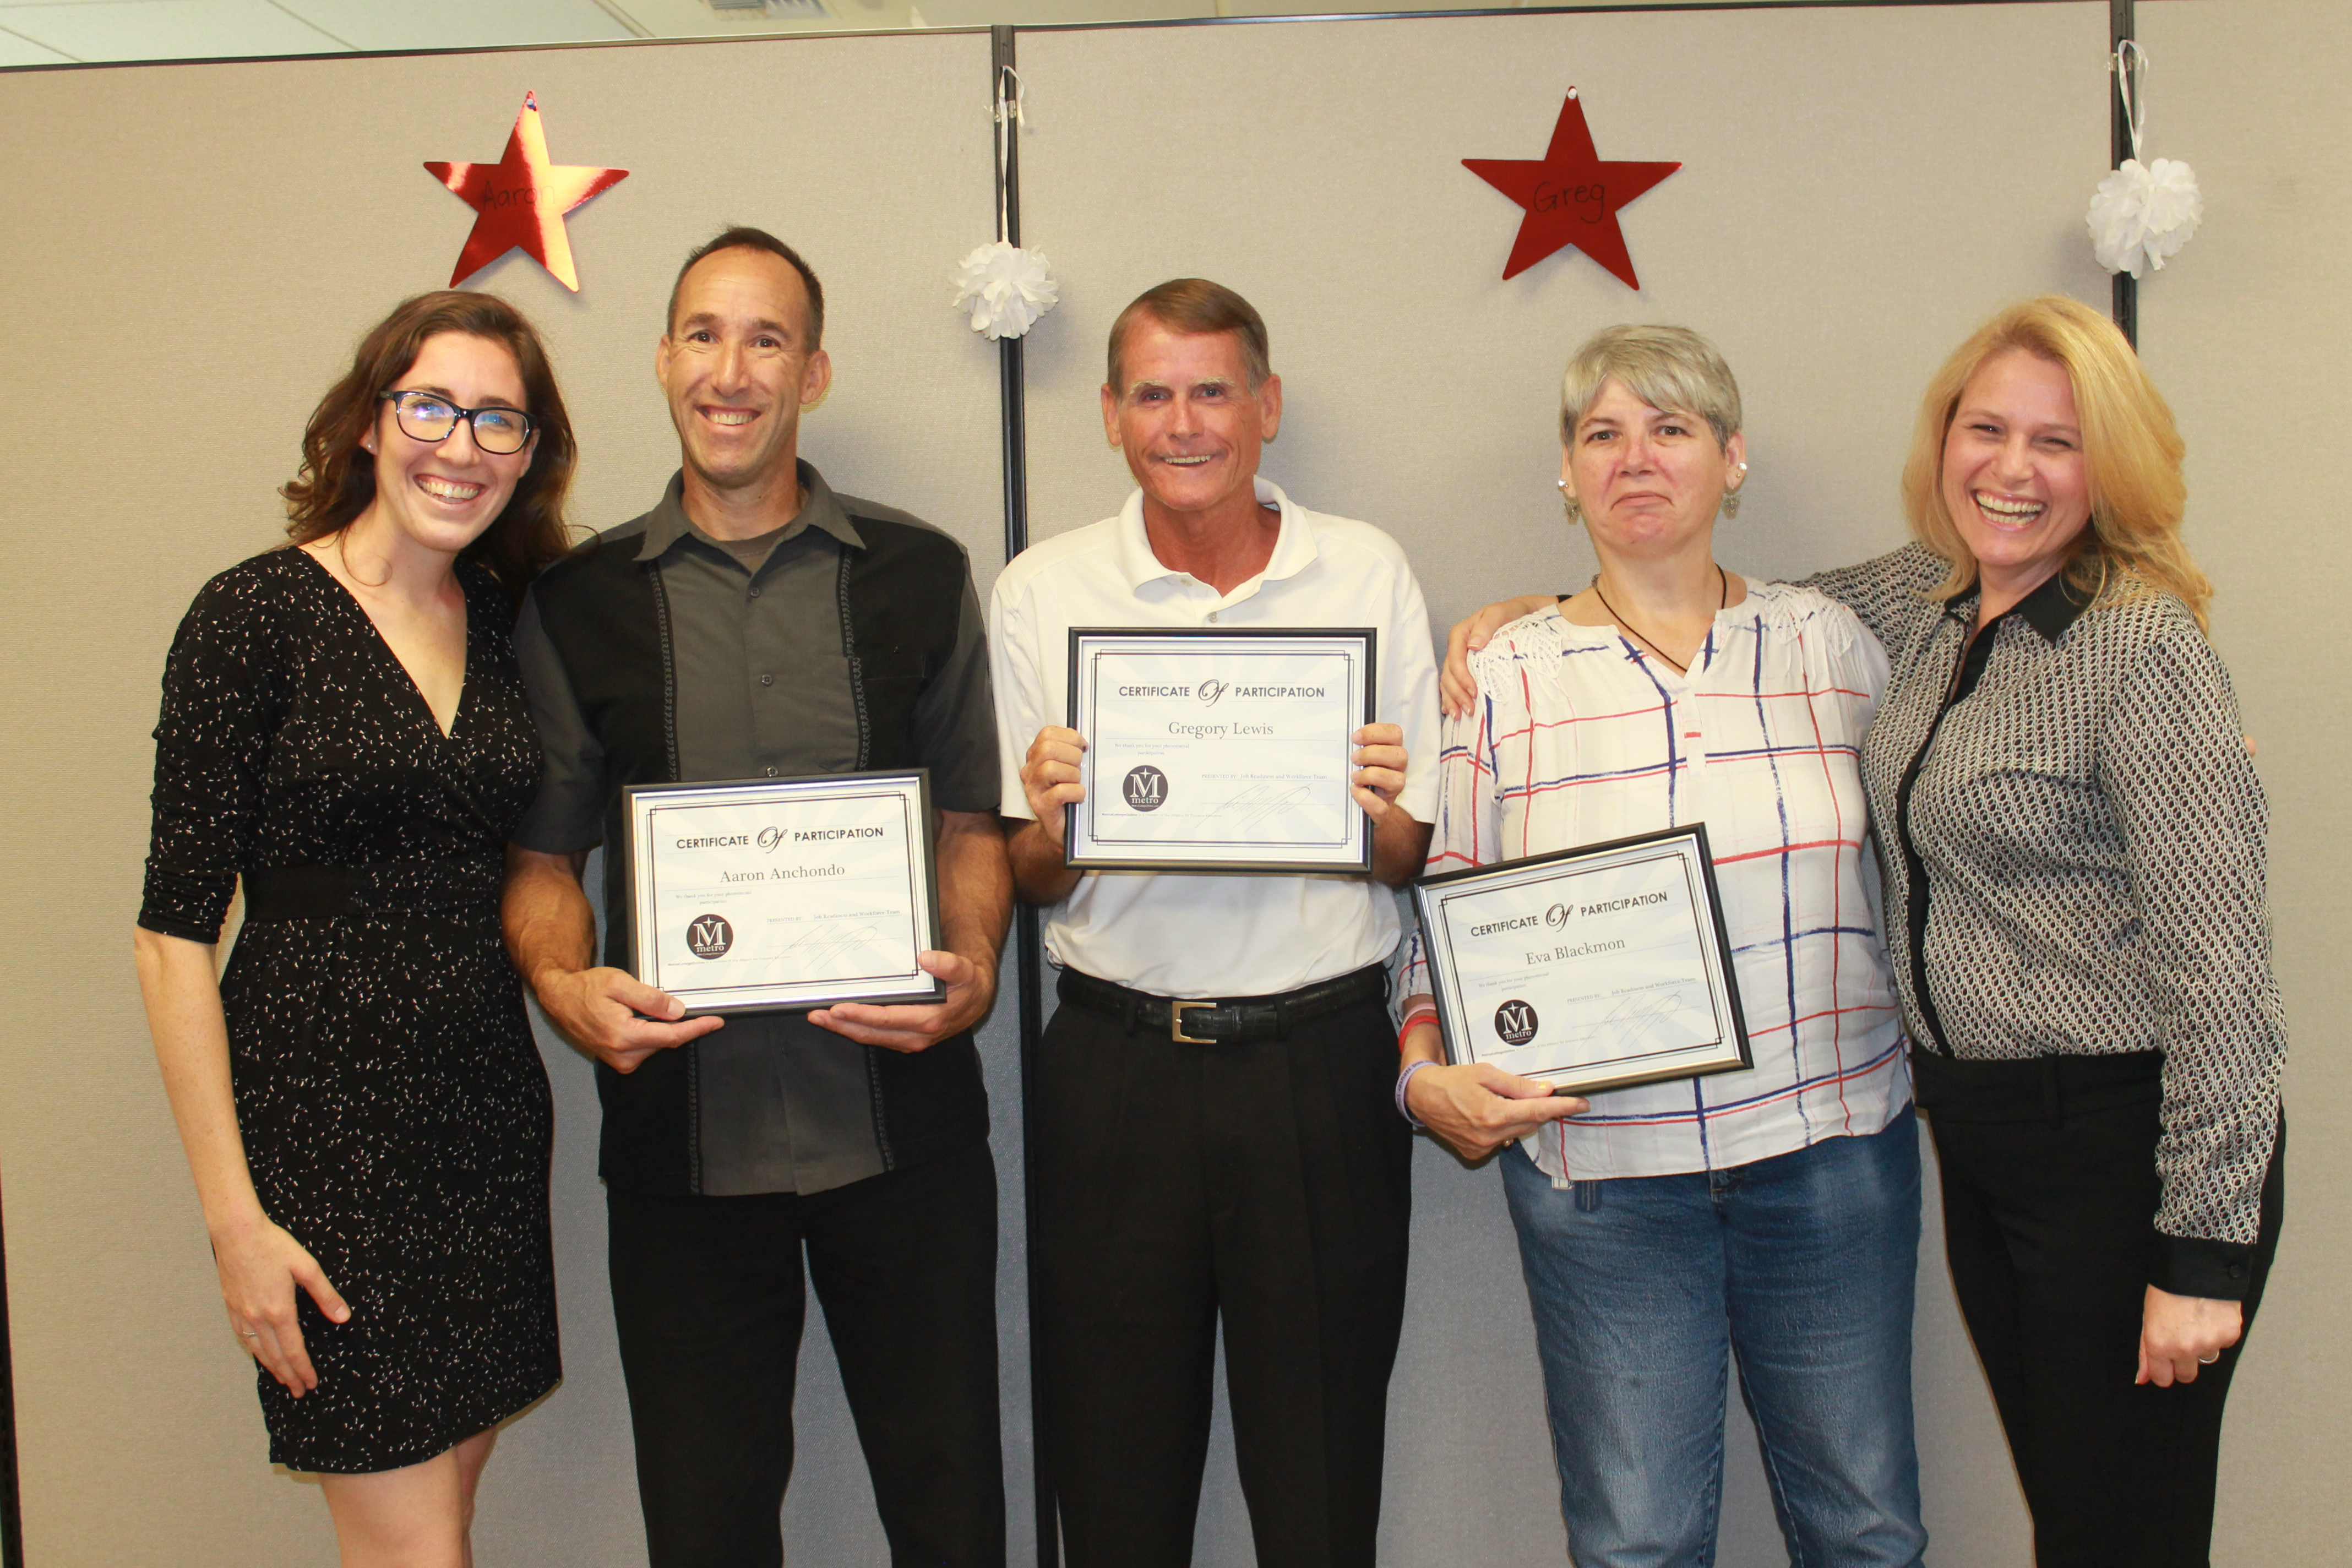 men and women holding certificates at Lawrence welk resort hiring event